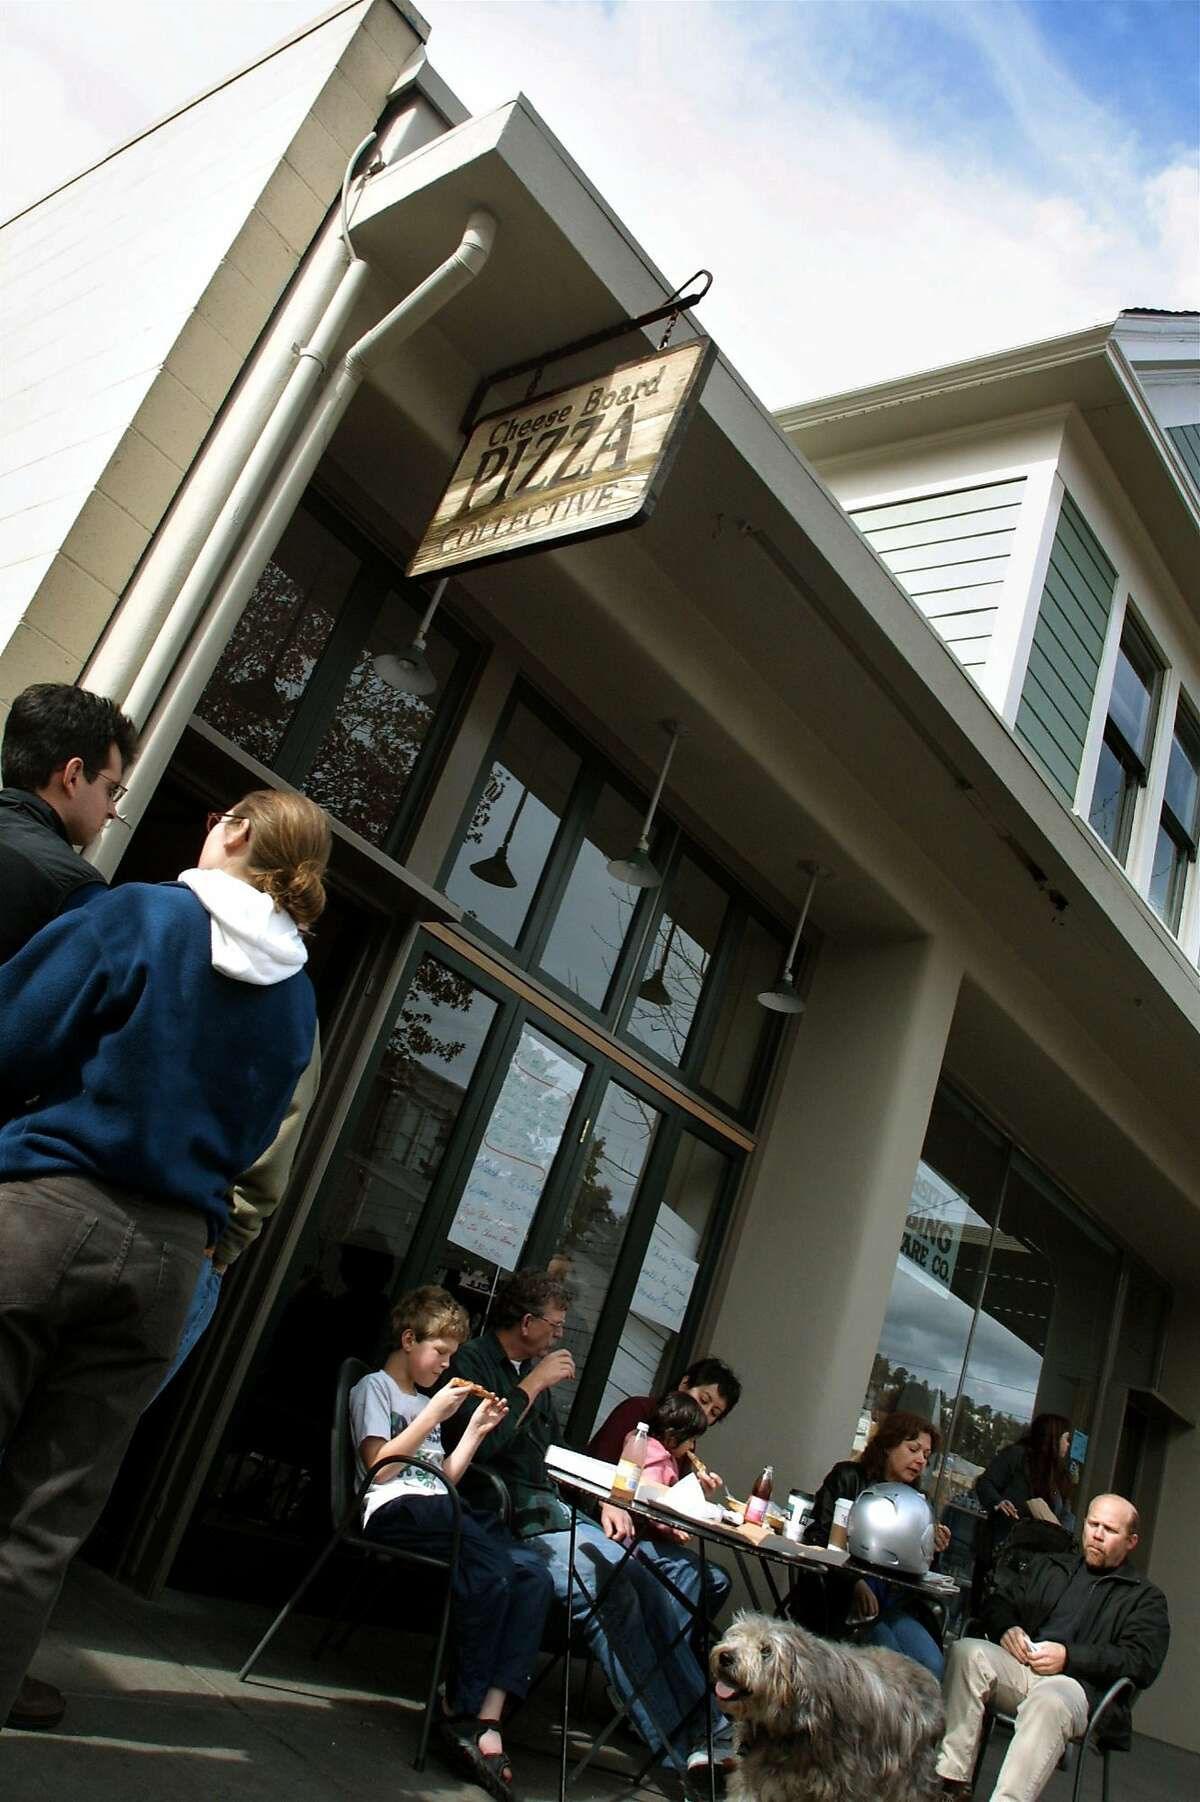 People wait outside for pizza at the Cheese Board Pizza Collective in Berkeley, Calif.